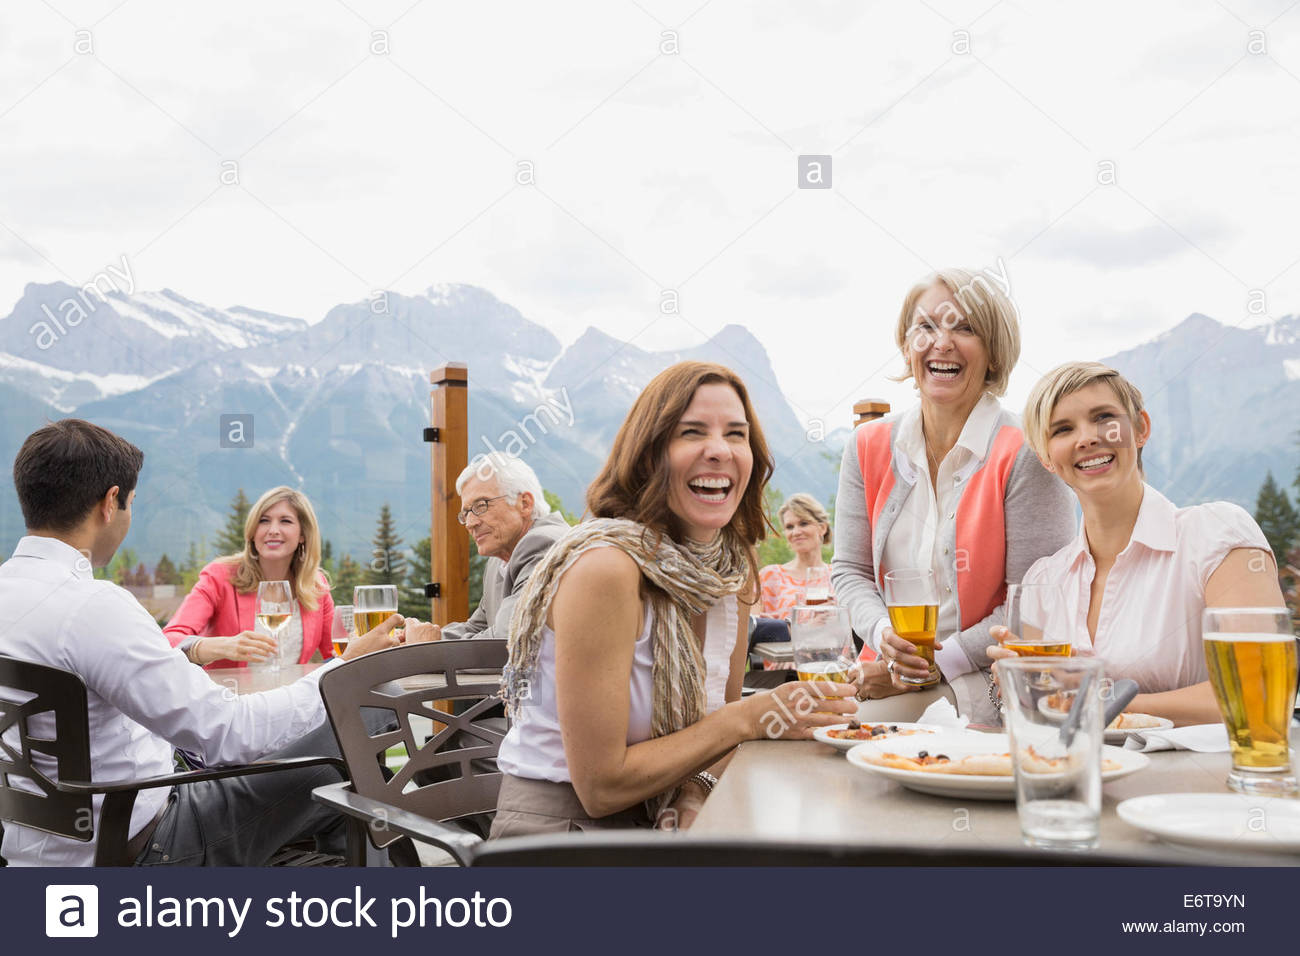 Business people laughing at networking event - Stock Image